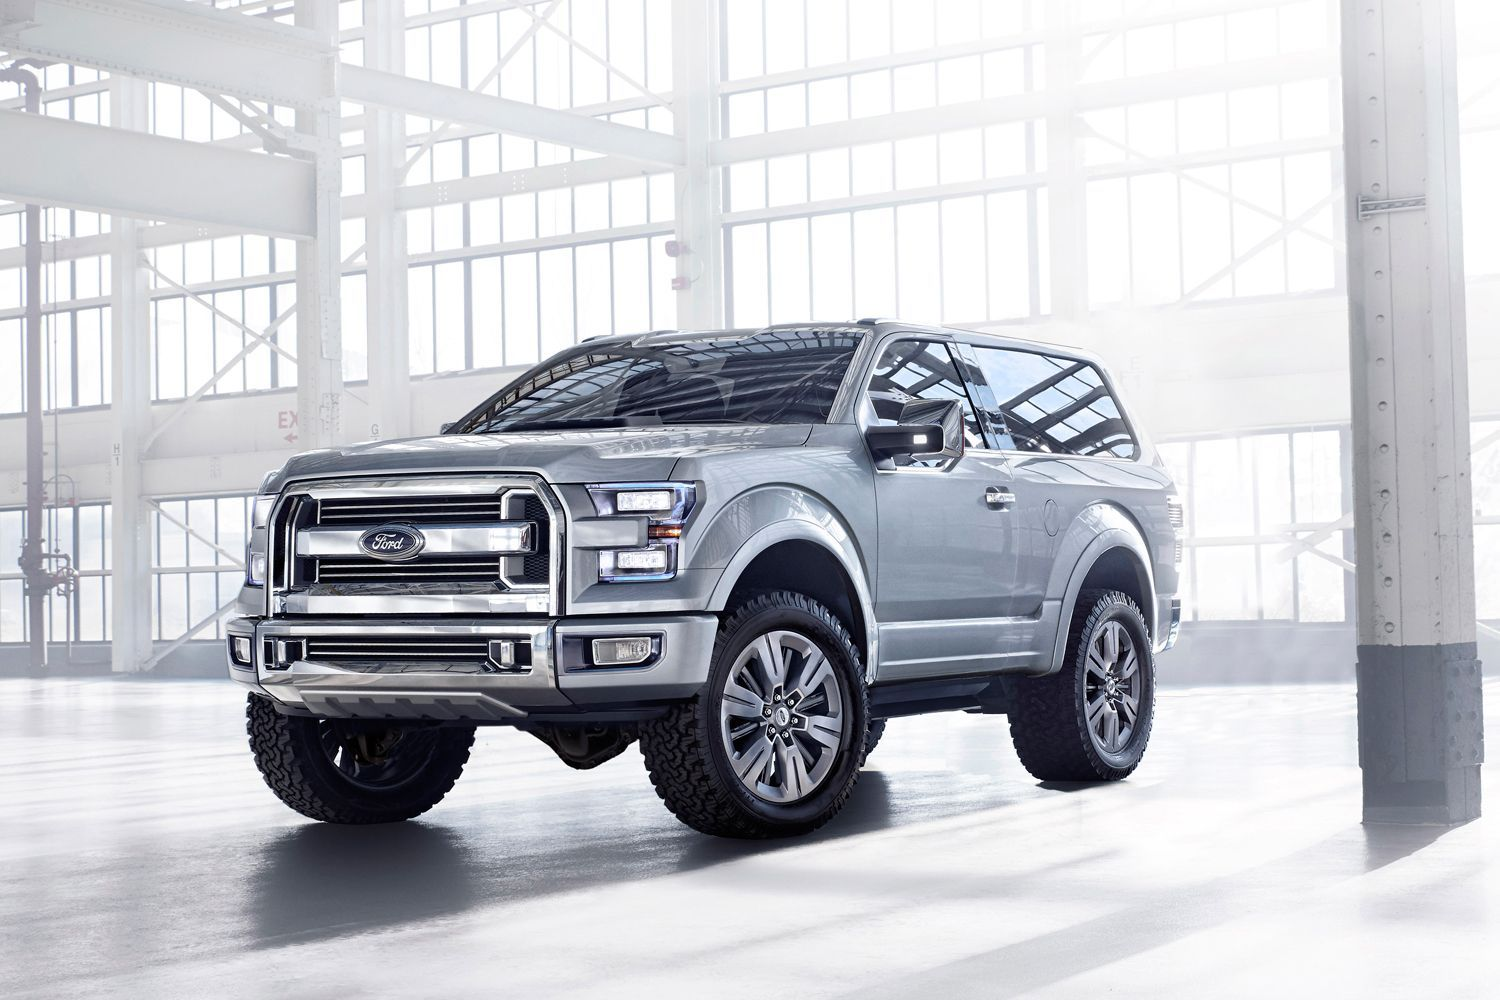 Die besten 20 2016 bronco ideen auf pinterest denver broncos super bowl ford bronco und early bronco